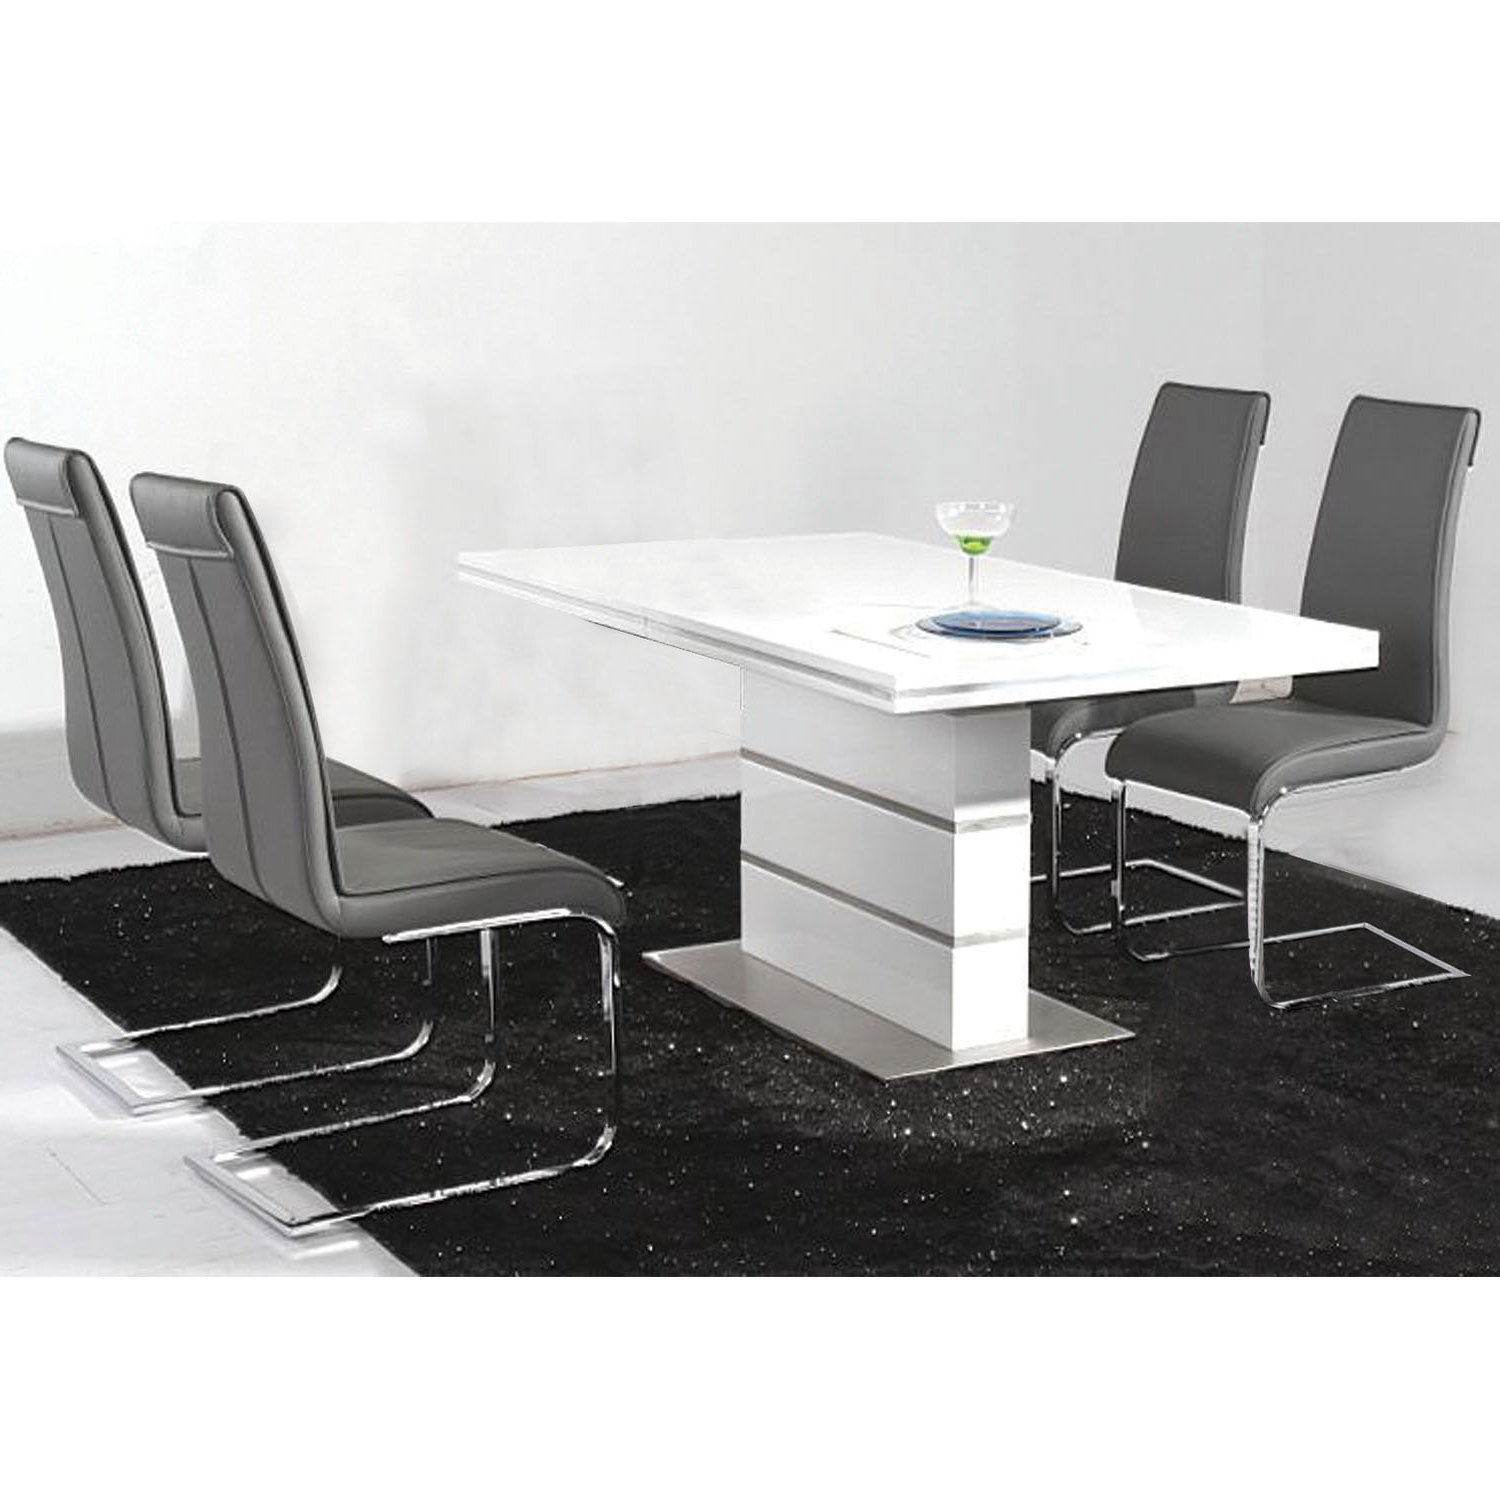 Awesome Dining Set With White High Gloss Dining Table With Metal Pertaining To Well Known Black Gloss Dining Sets (Gallery 21 of 25)